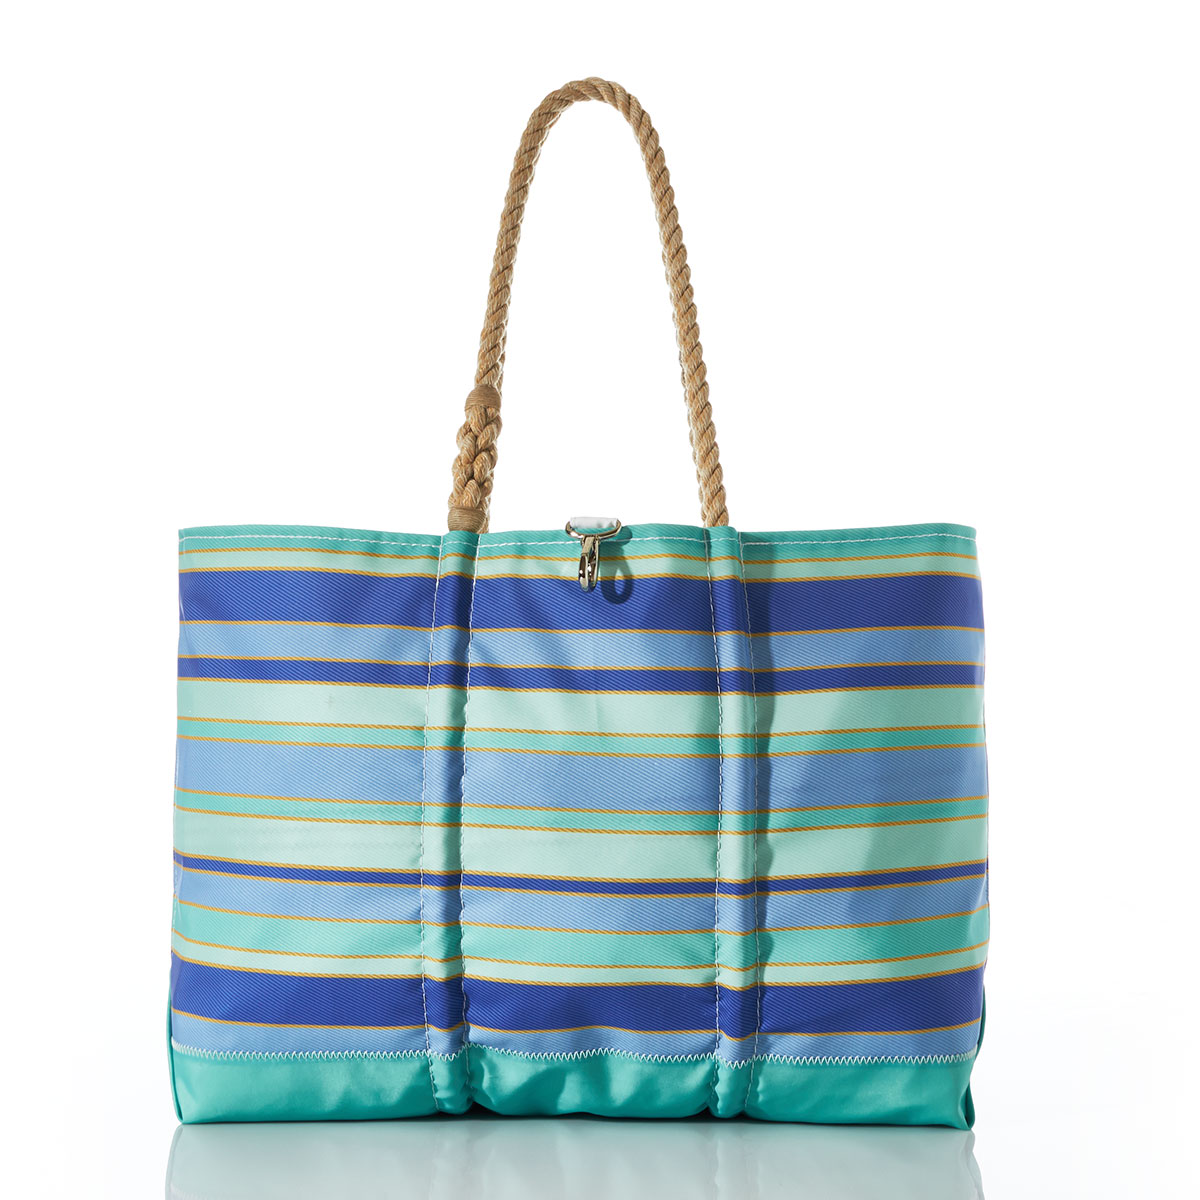 stripes of shades of blues are printed on this recycled sail cloth tote, with a seafoam green bottom and hemp rope handles